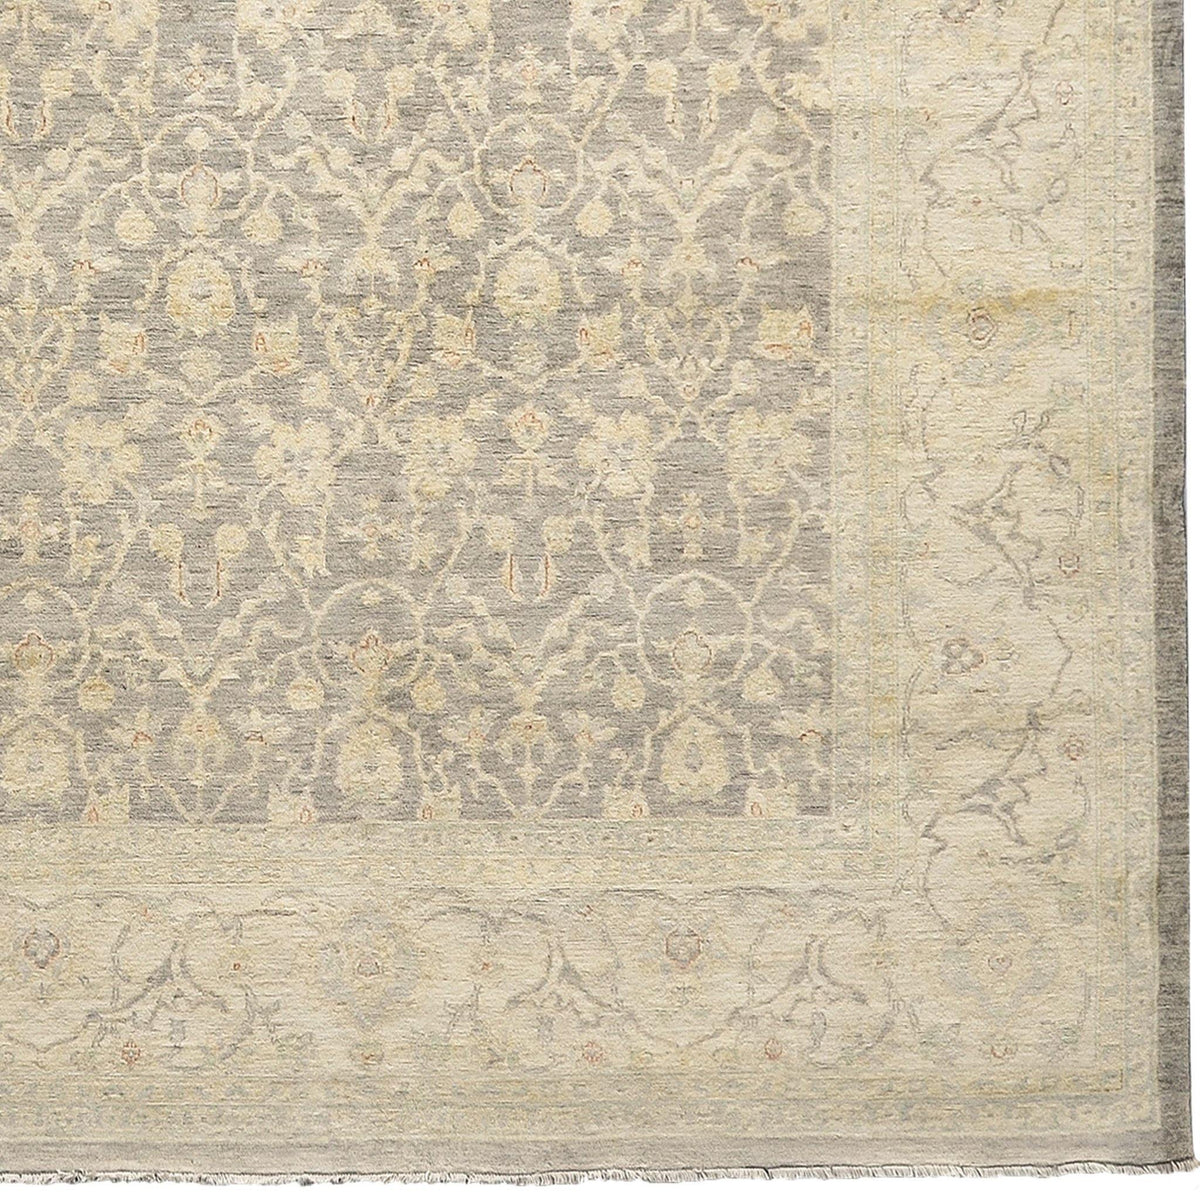 Hand-knotted Colour Reform Wool Rug 245cm x 293cm Persian-Rug | House-of-Haghi | NewMarket | Auckland | NZ | Handmade Persian Rugs | Hand Knotted Persian Rugs